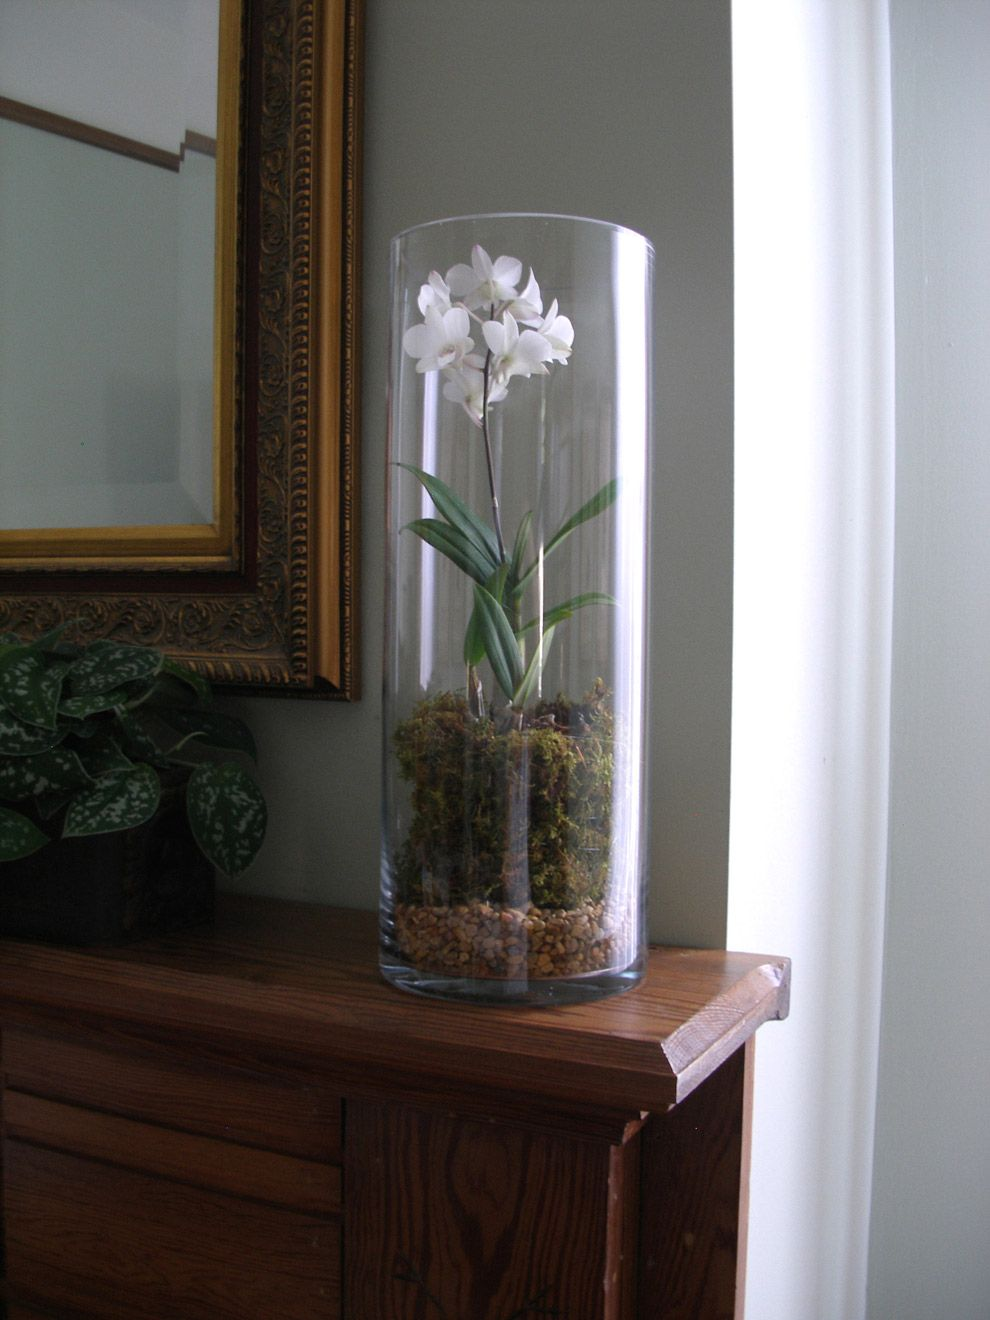 Using Round Cylinder Clear Glass Extra Tall Vase For Orchid